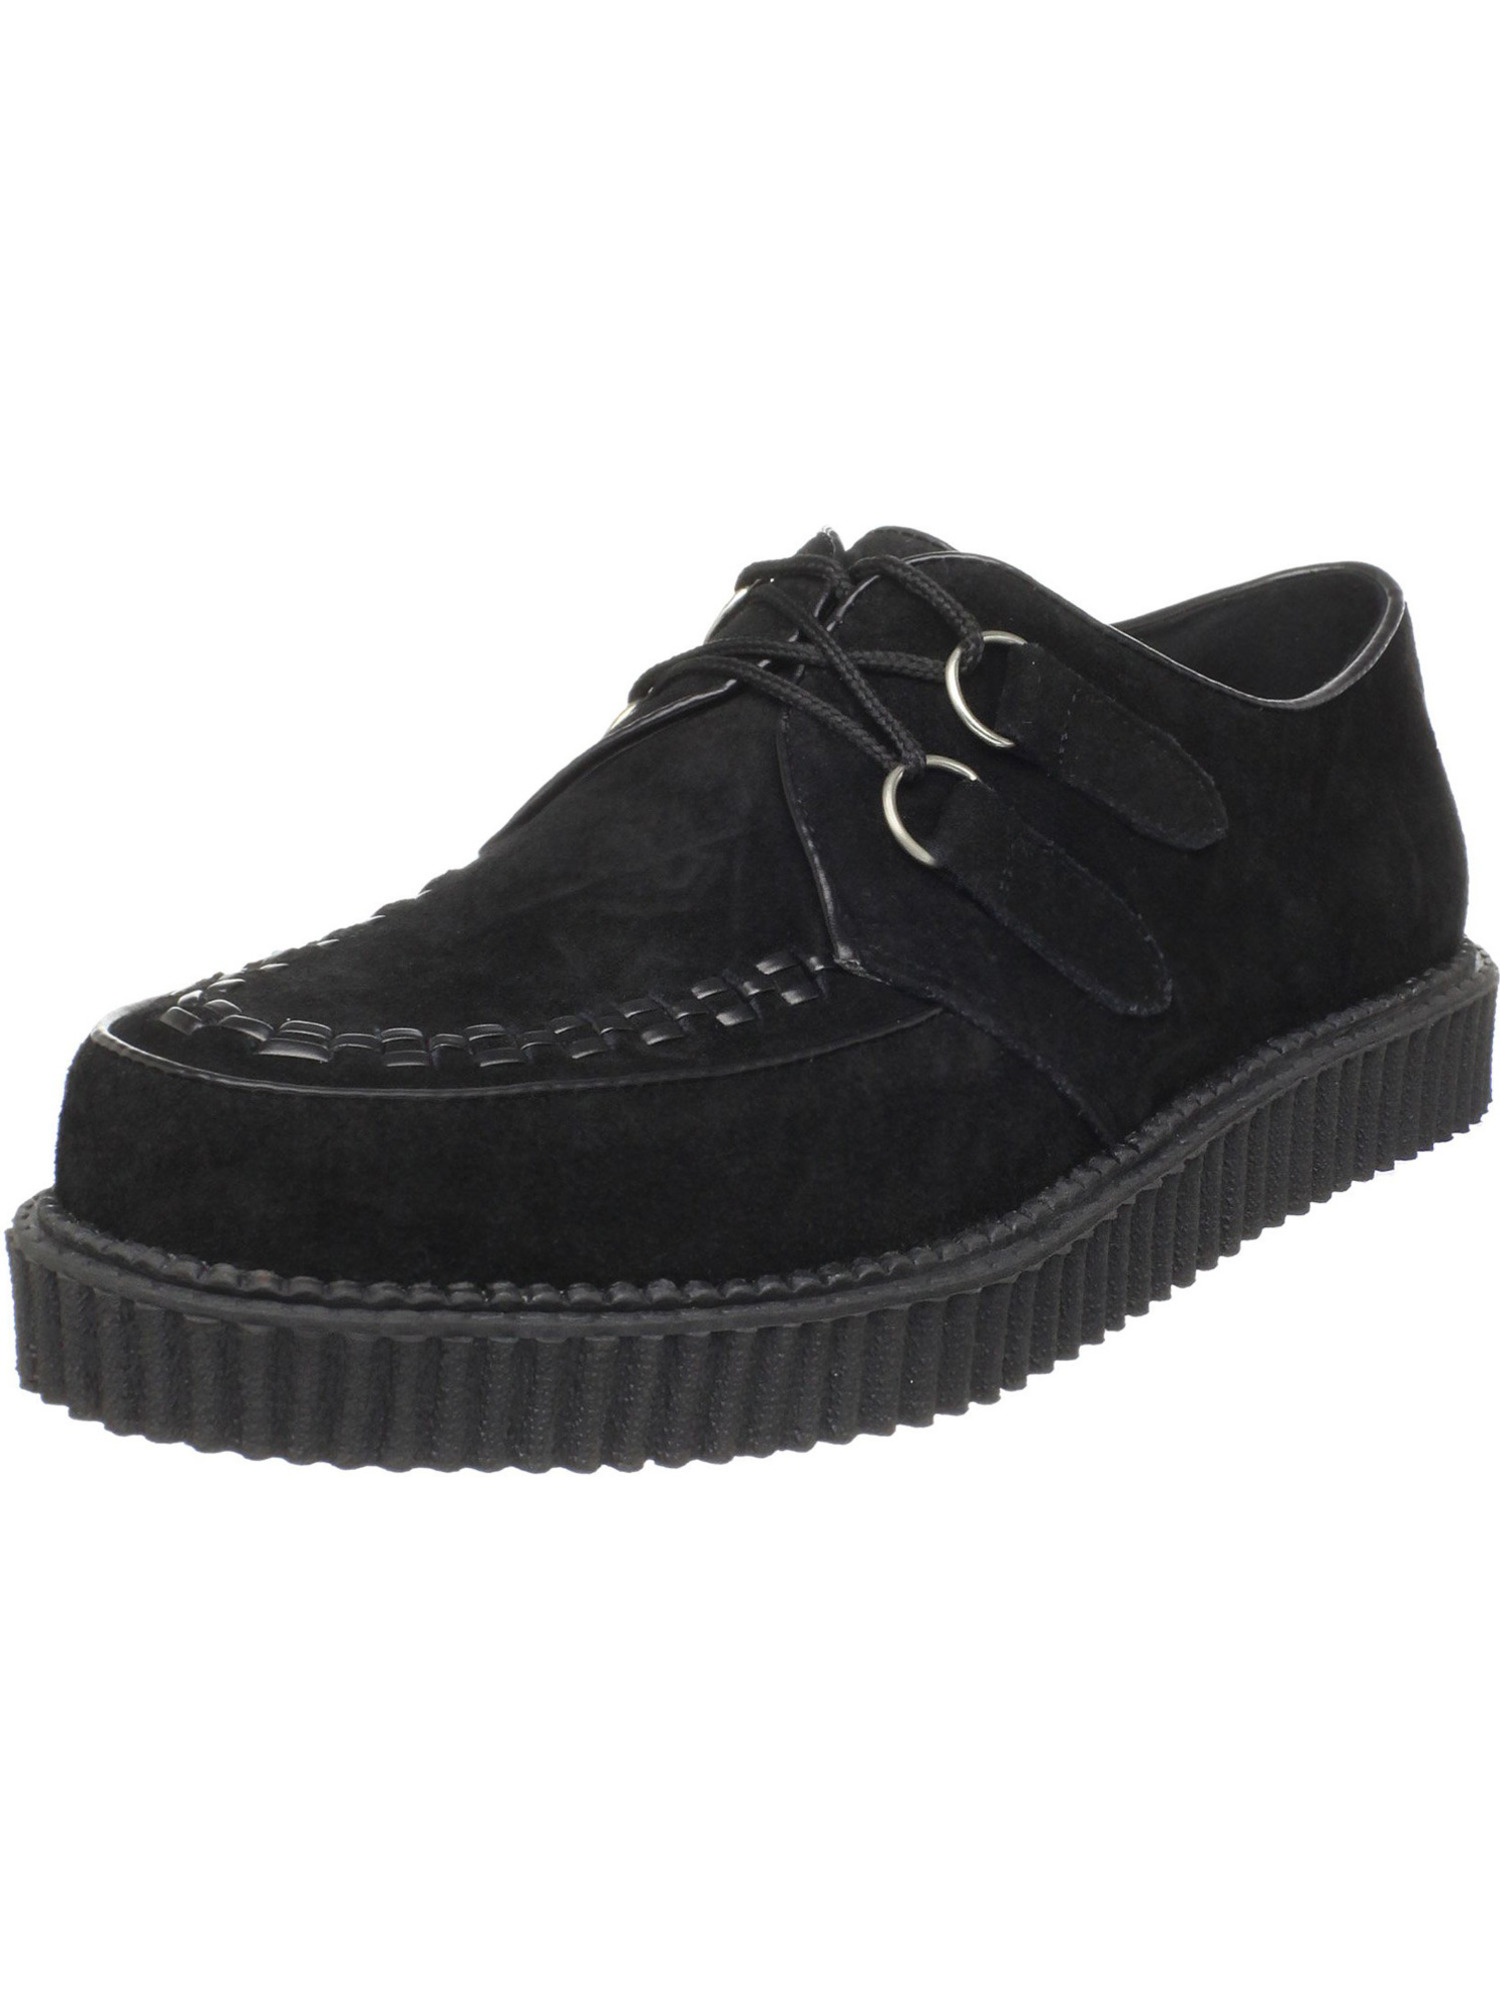 1 Inch MENS SIZING Creepers Black Suede Gothic Shoes Rockabilly Syle